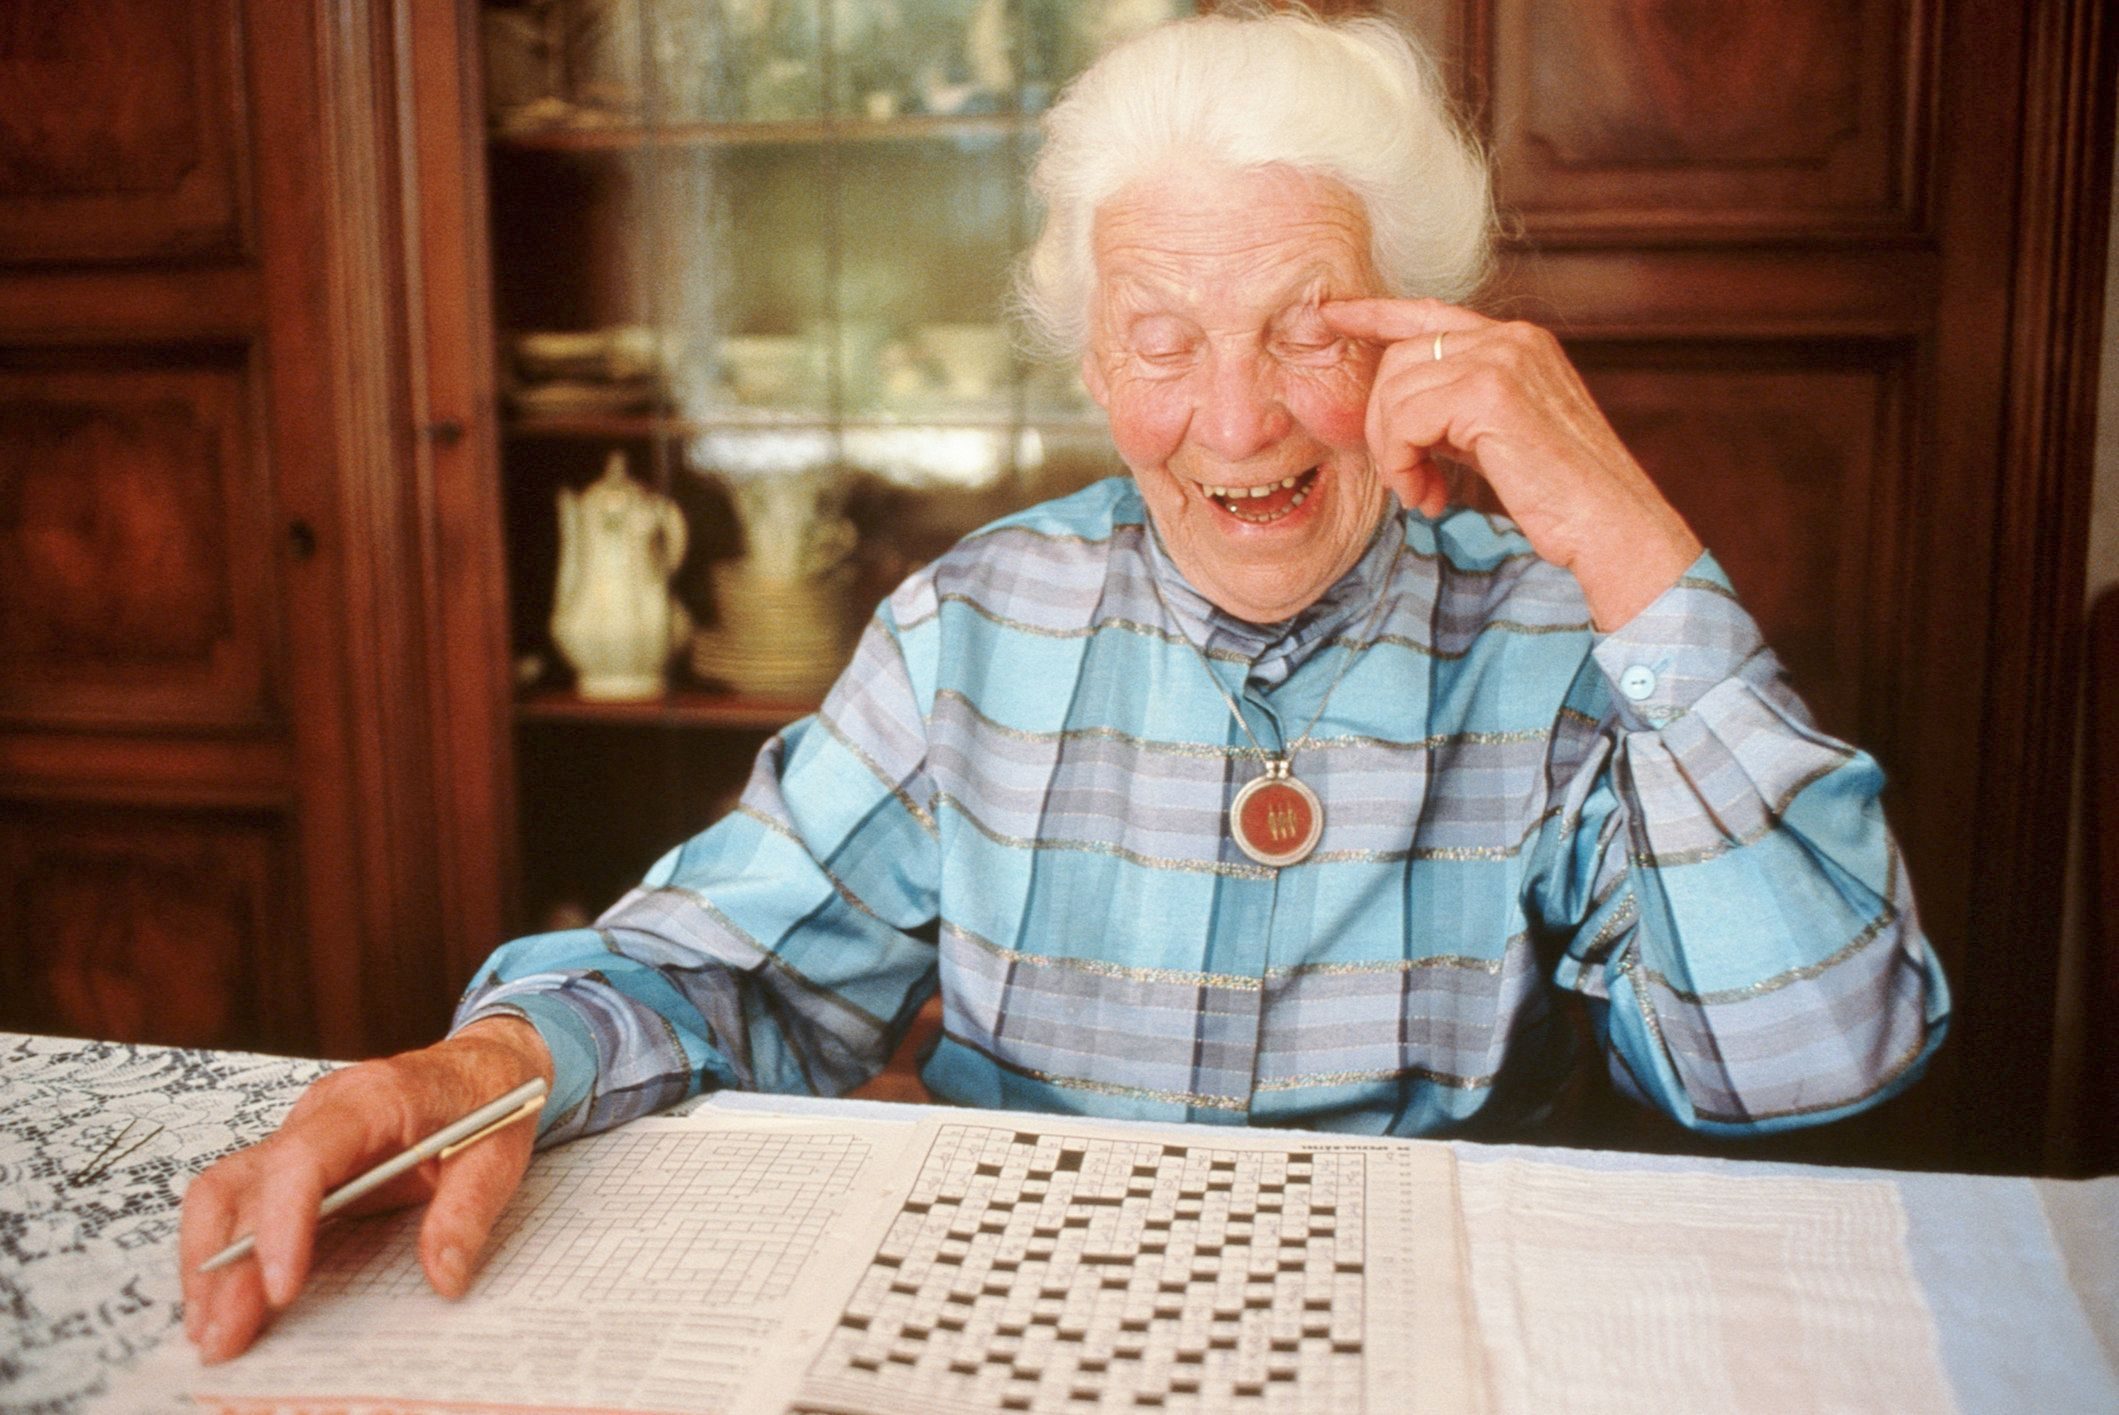 Researchers Would Love To Know Why Some Older People Have Such Excellent